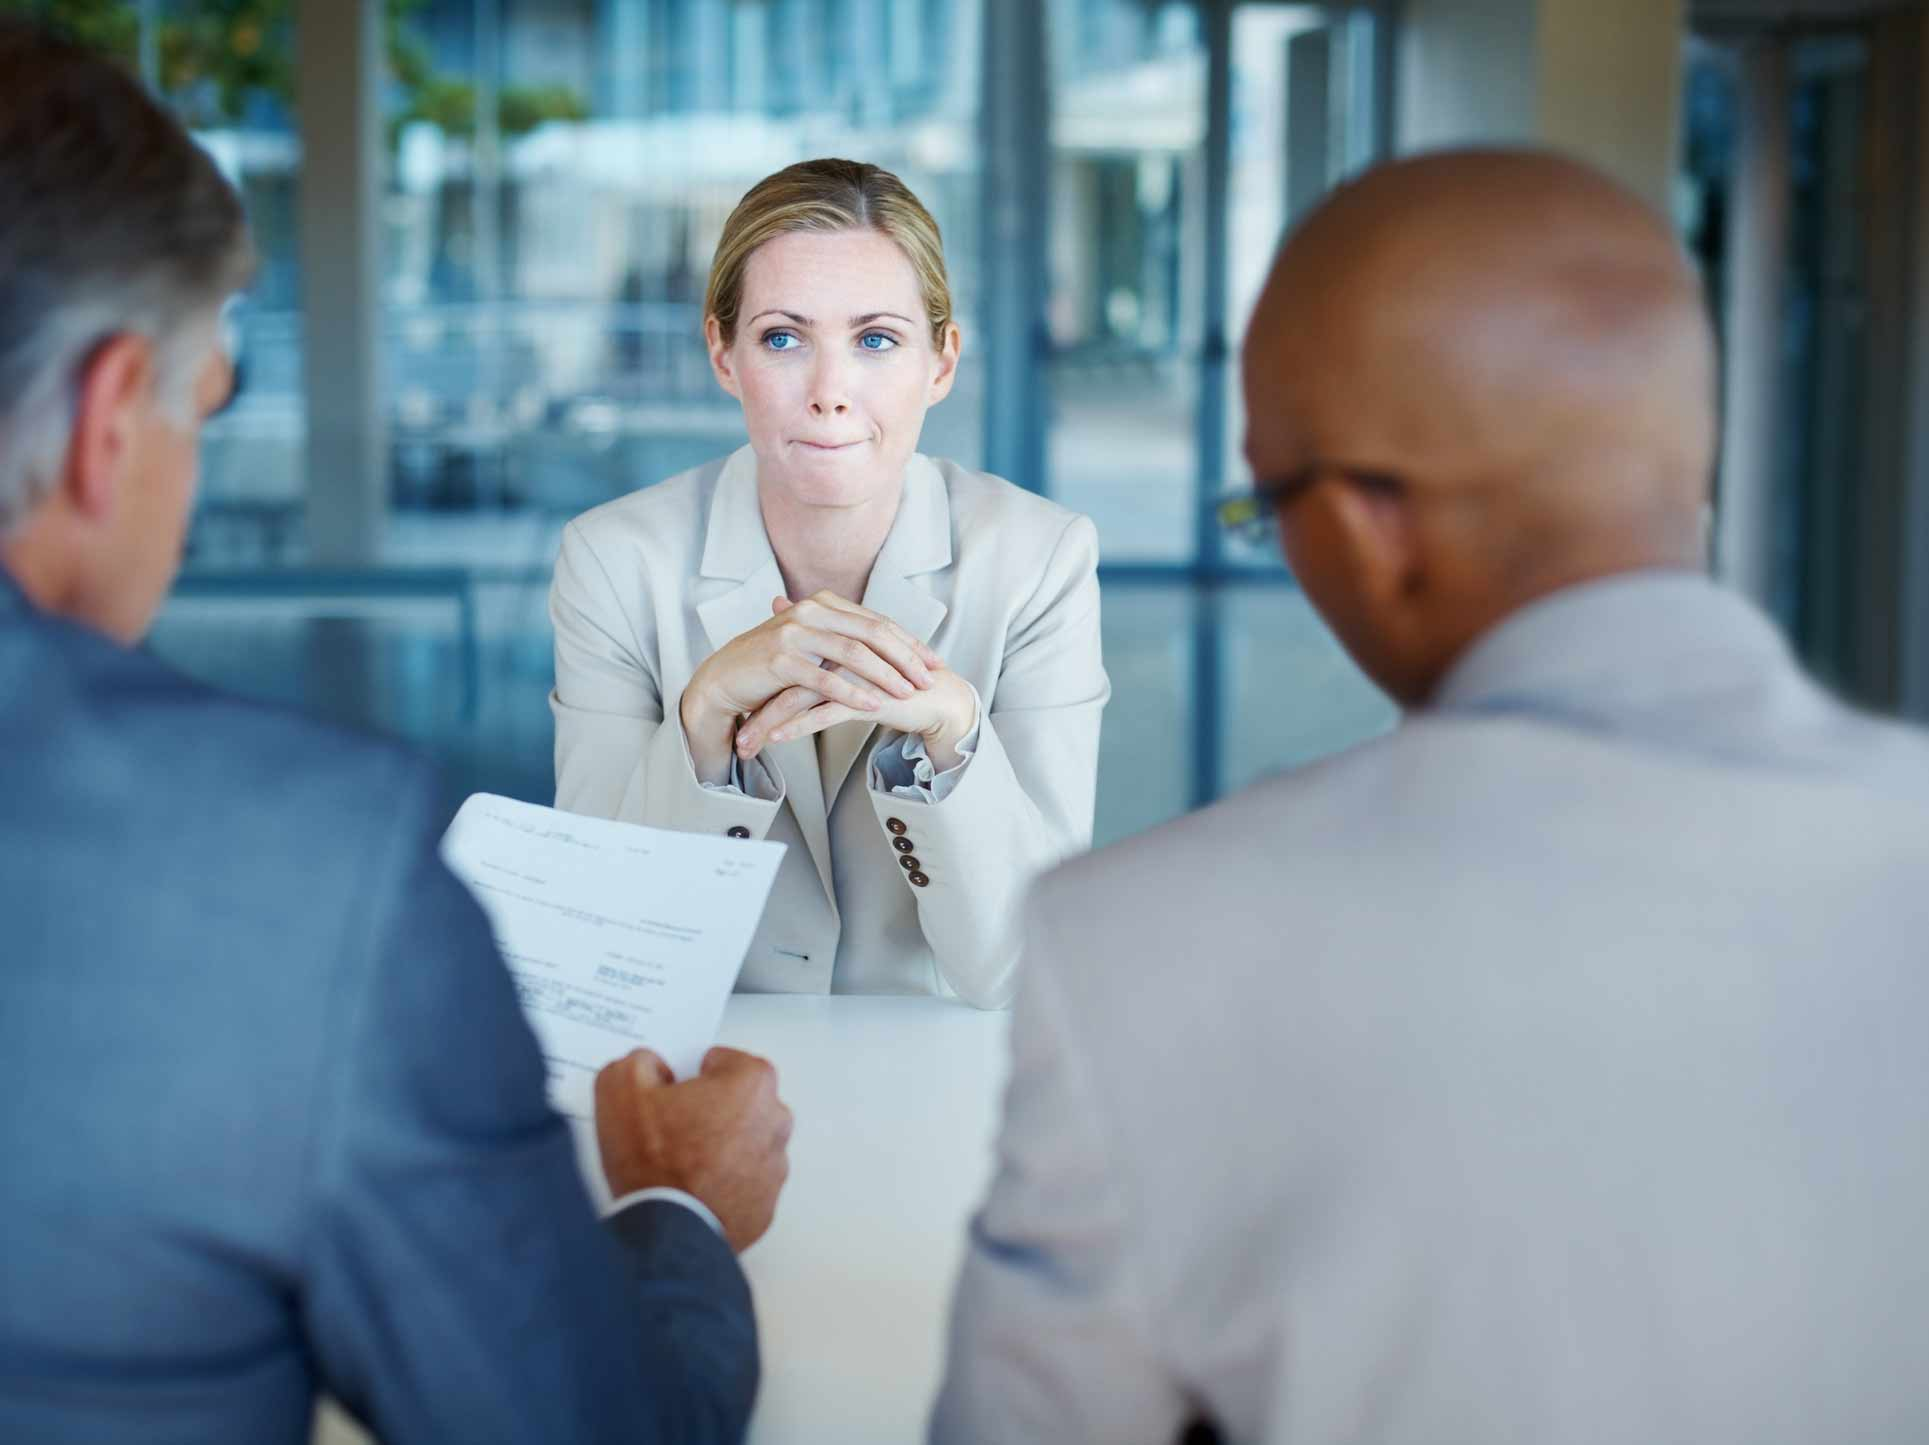 The truth about lying during a job interview